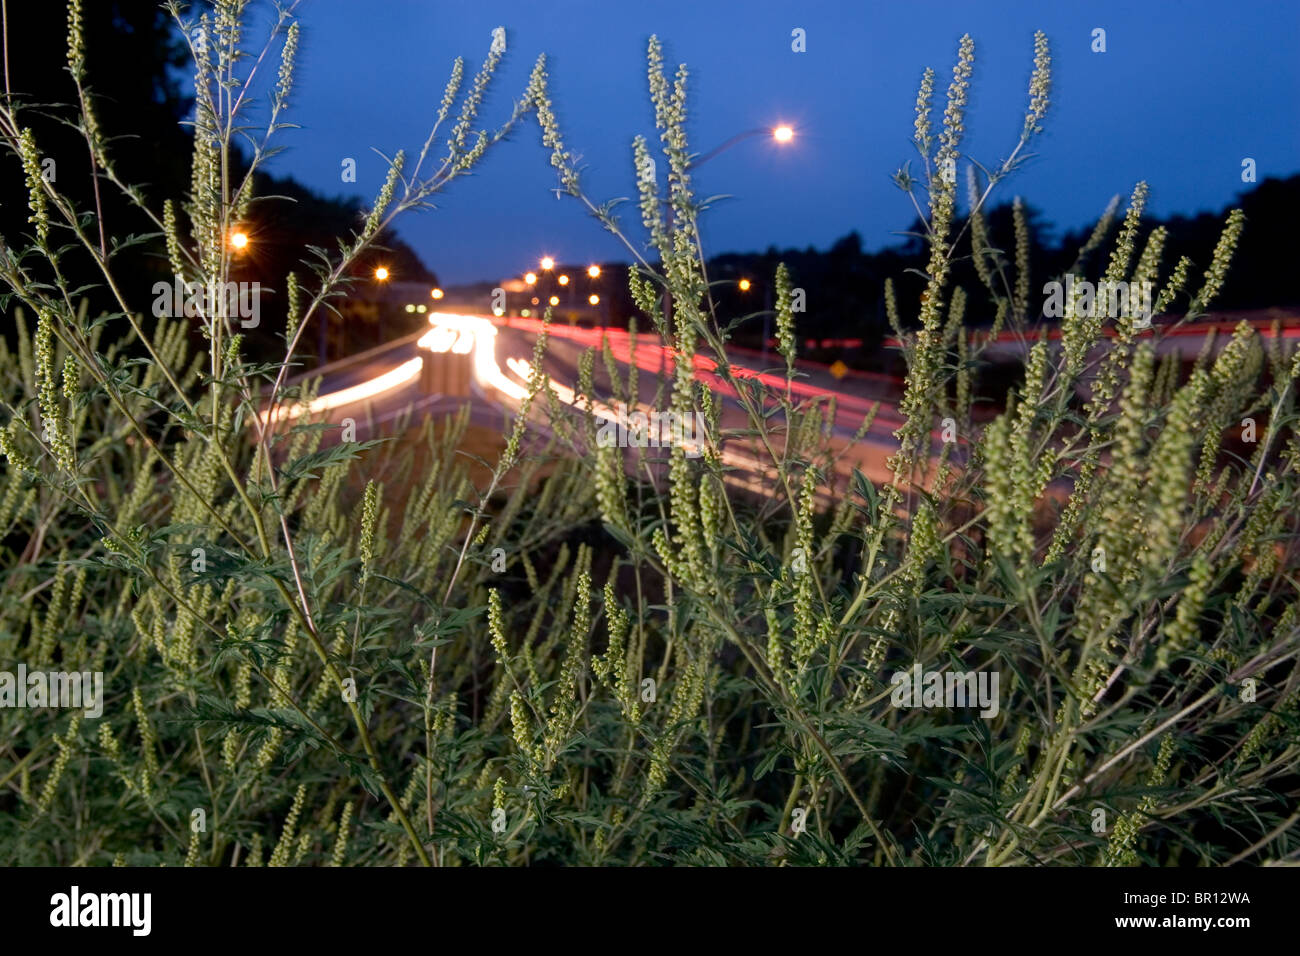 A ragweed plant grows along the Washington Beltway in DC. Stock Photo